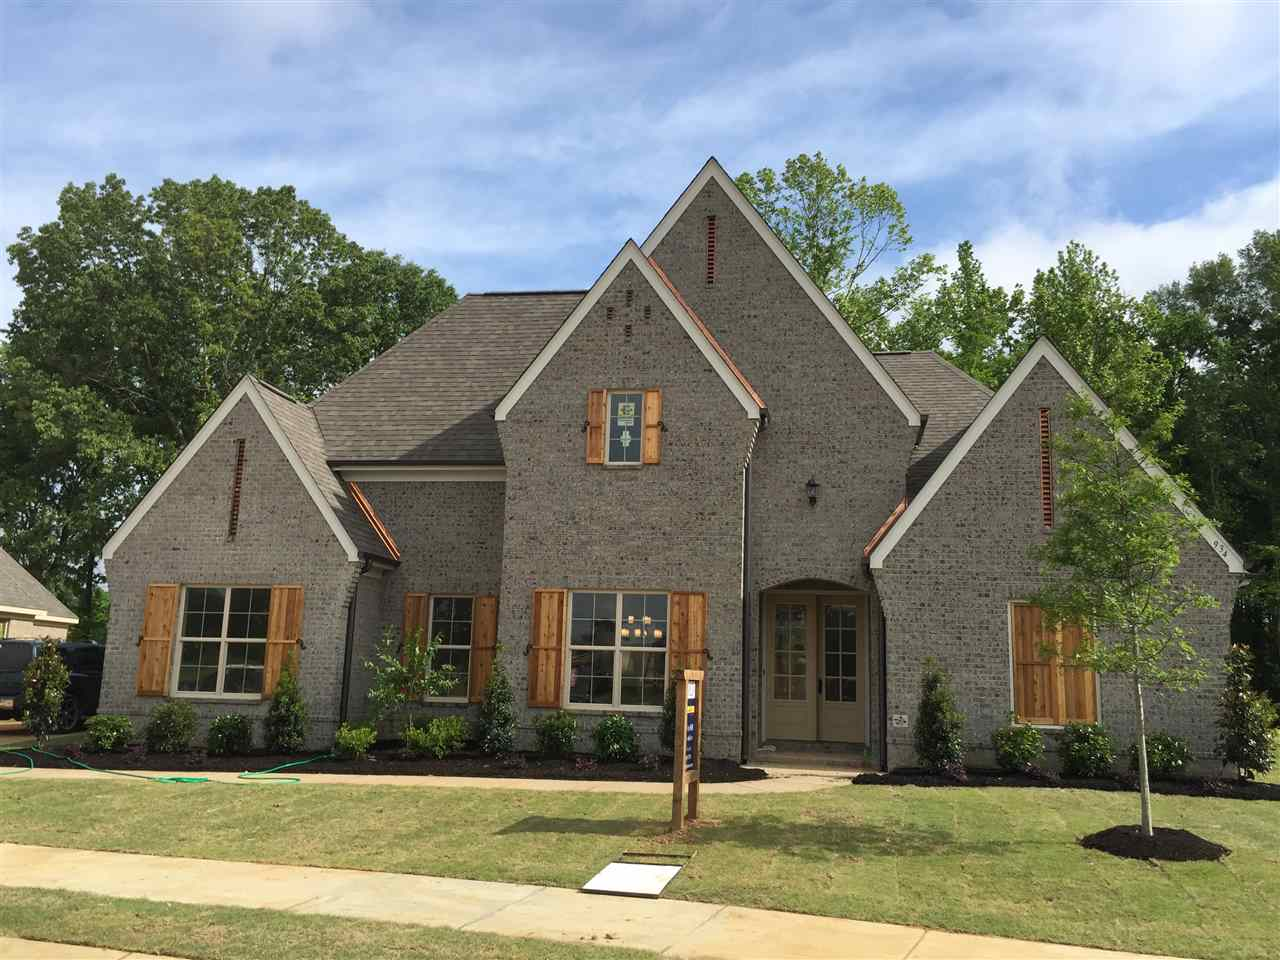 Property for sale at 934 Cypress Run Dr, Collierville,  TN 38017